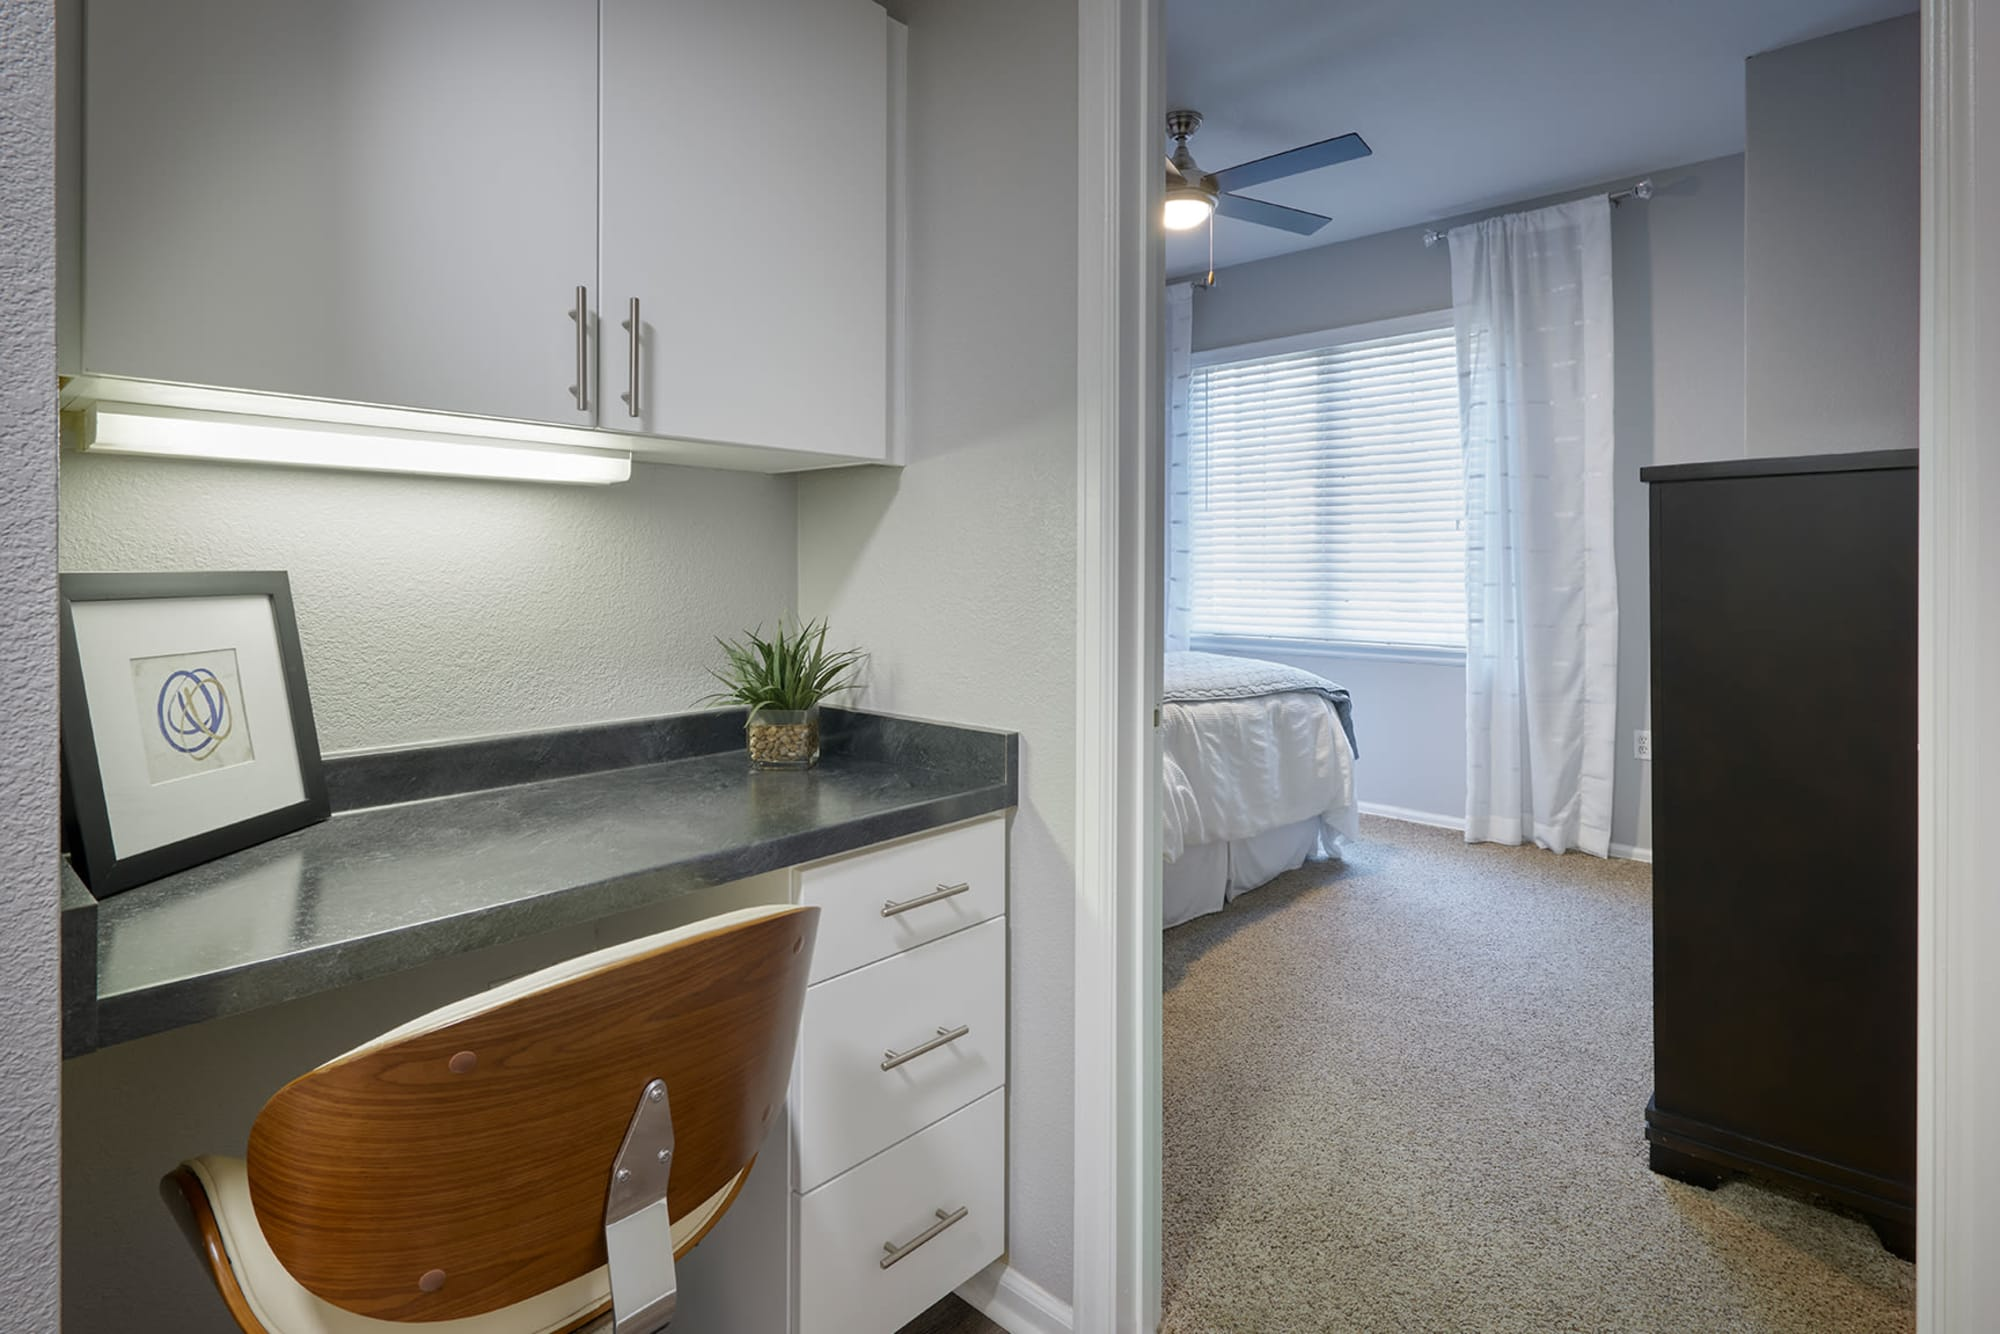 An office space next to the bedroom at Crestone Apartments in Aurora, Colorado